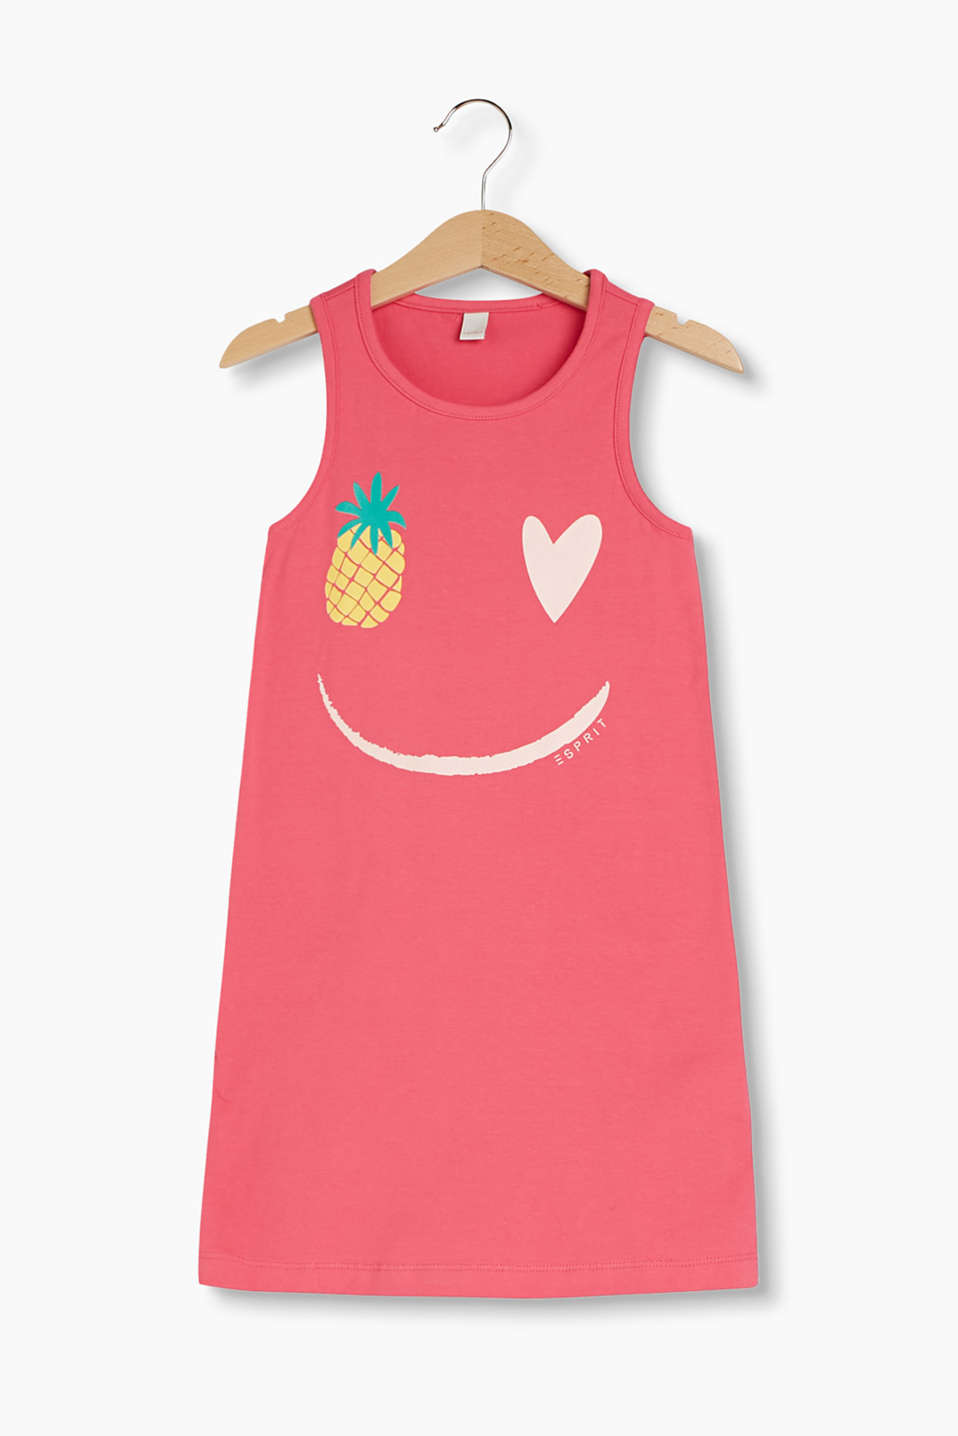 With a smiley face: jersey dress in a tank top style